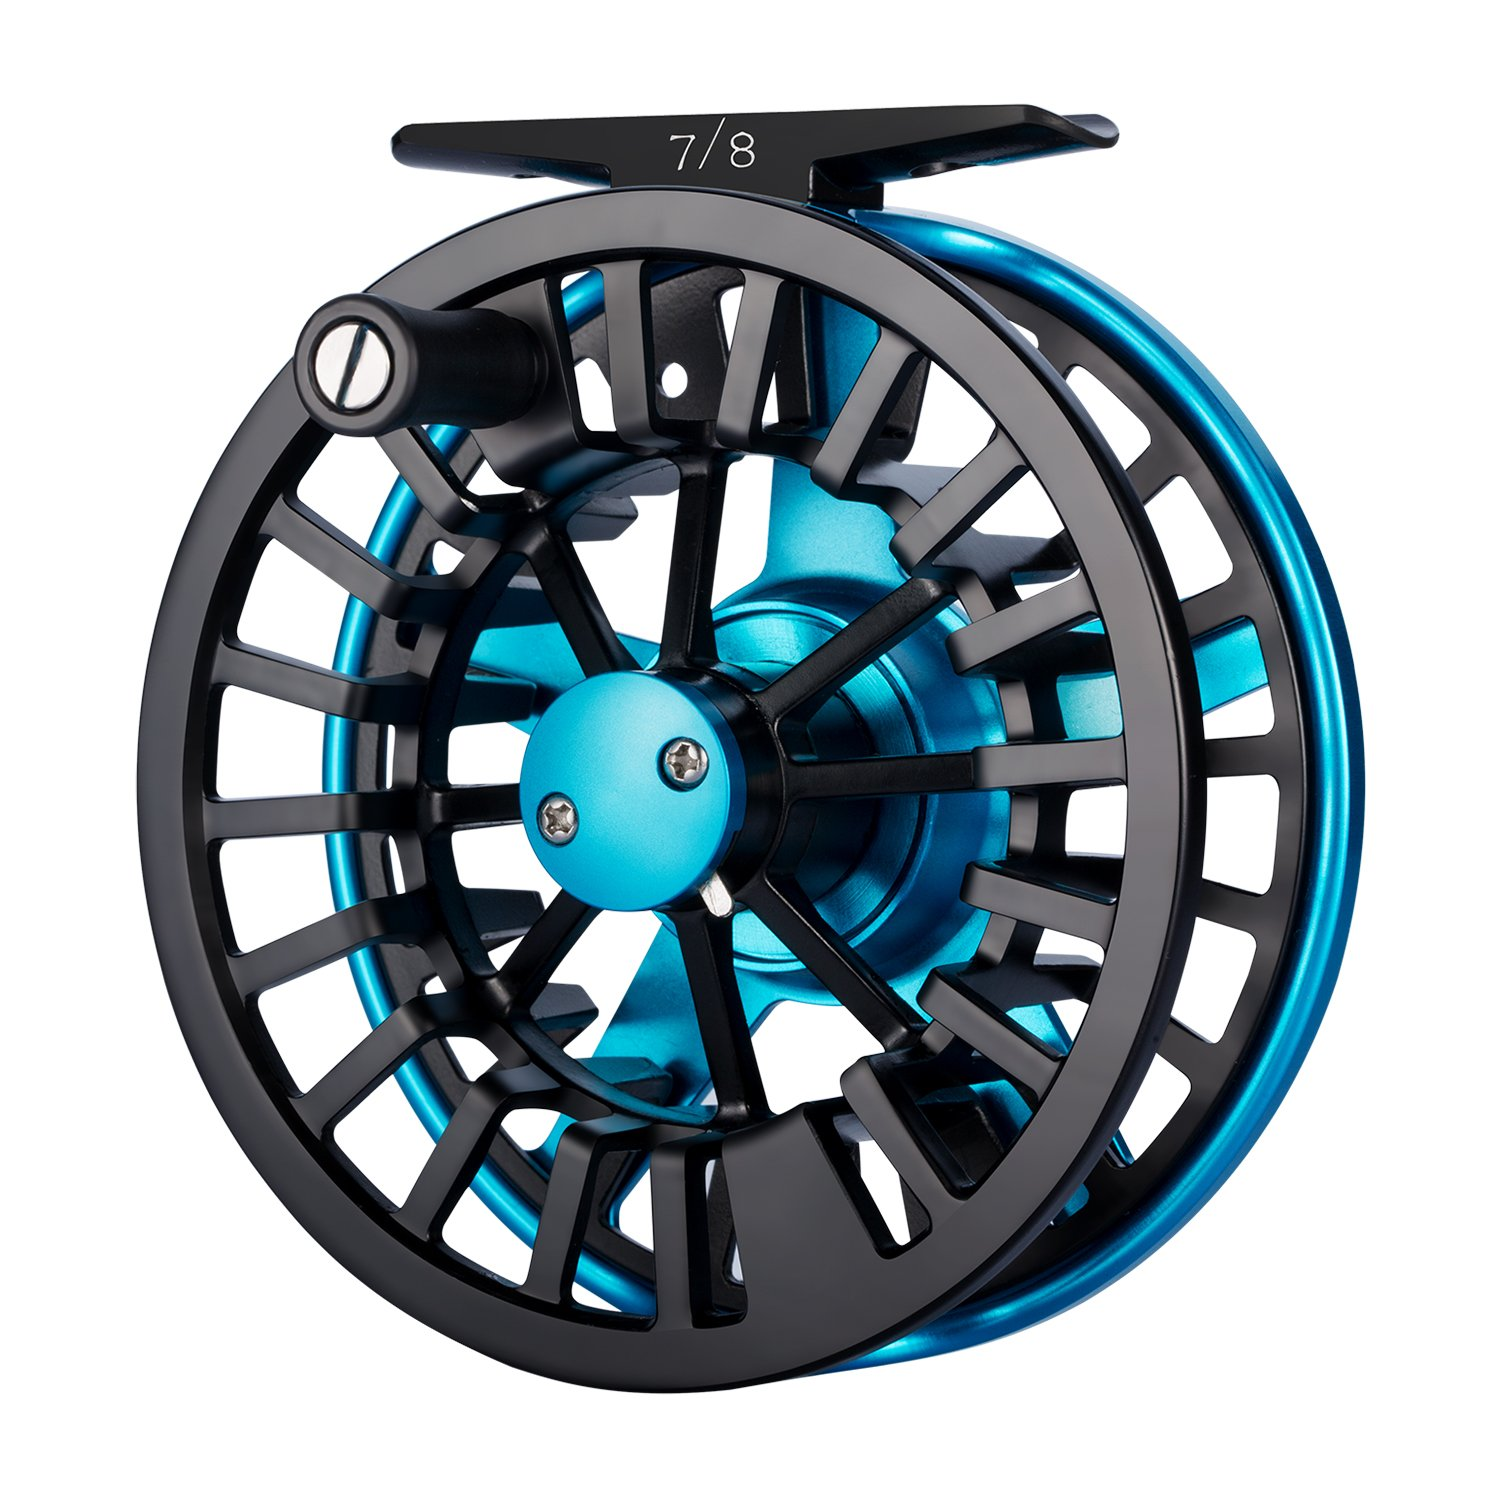 Piscifun Aoka Aluminum Fly Fishing Reel with Cork Teflon Disc Drag System